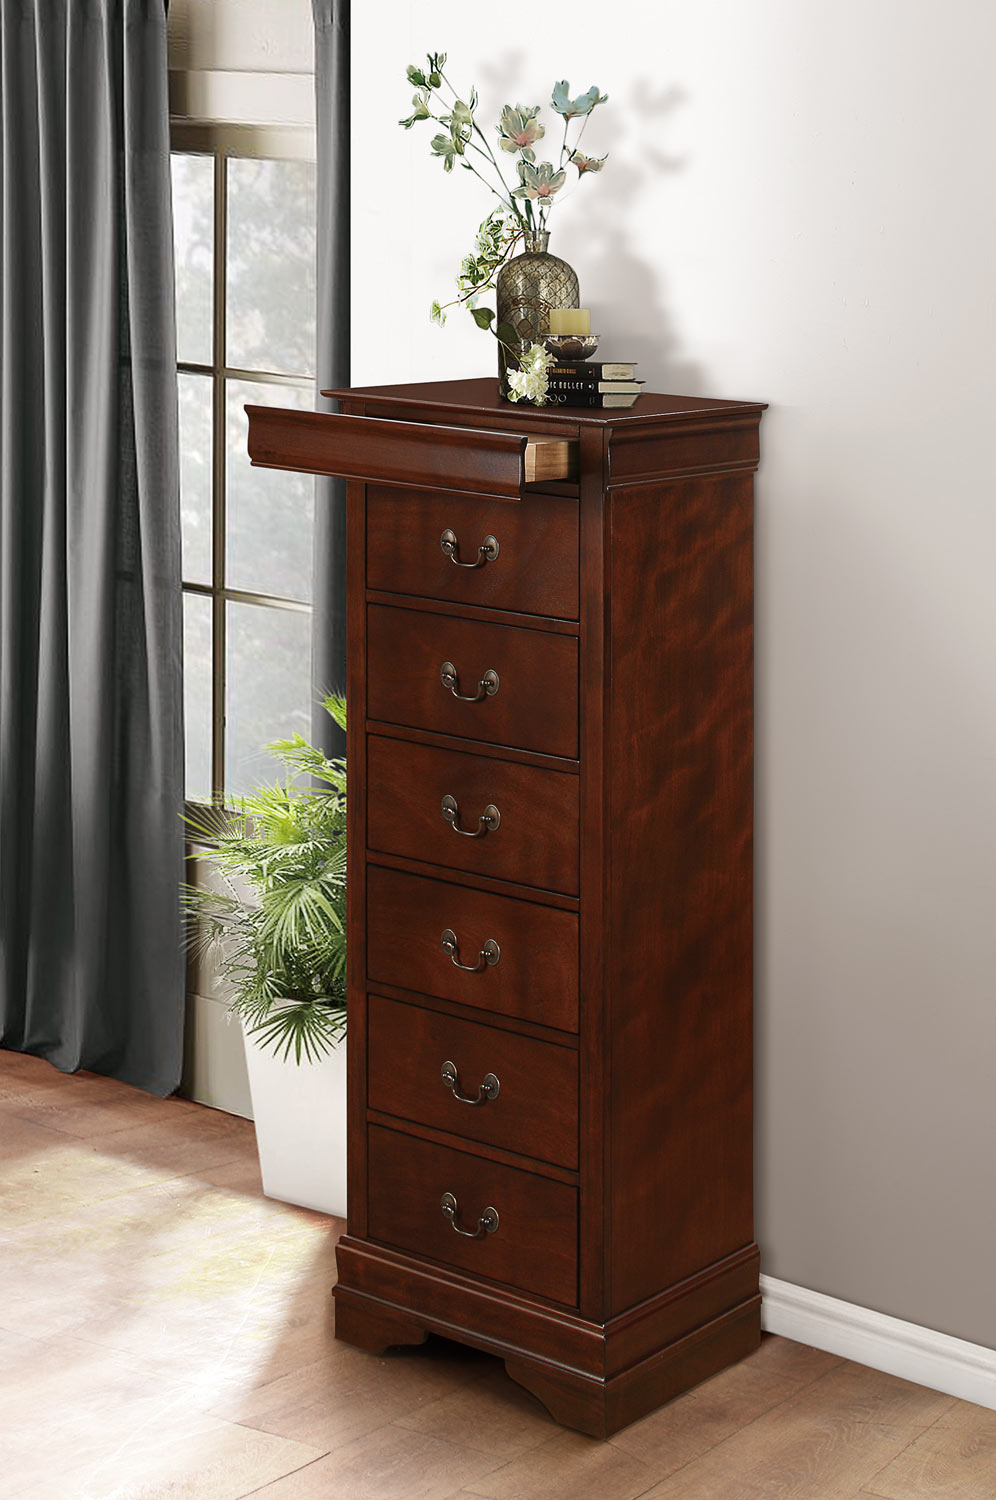 Homelegance Mayville Lingerie Chest - Hidden Drawer - Burnished Brown Cherry